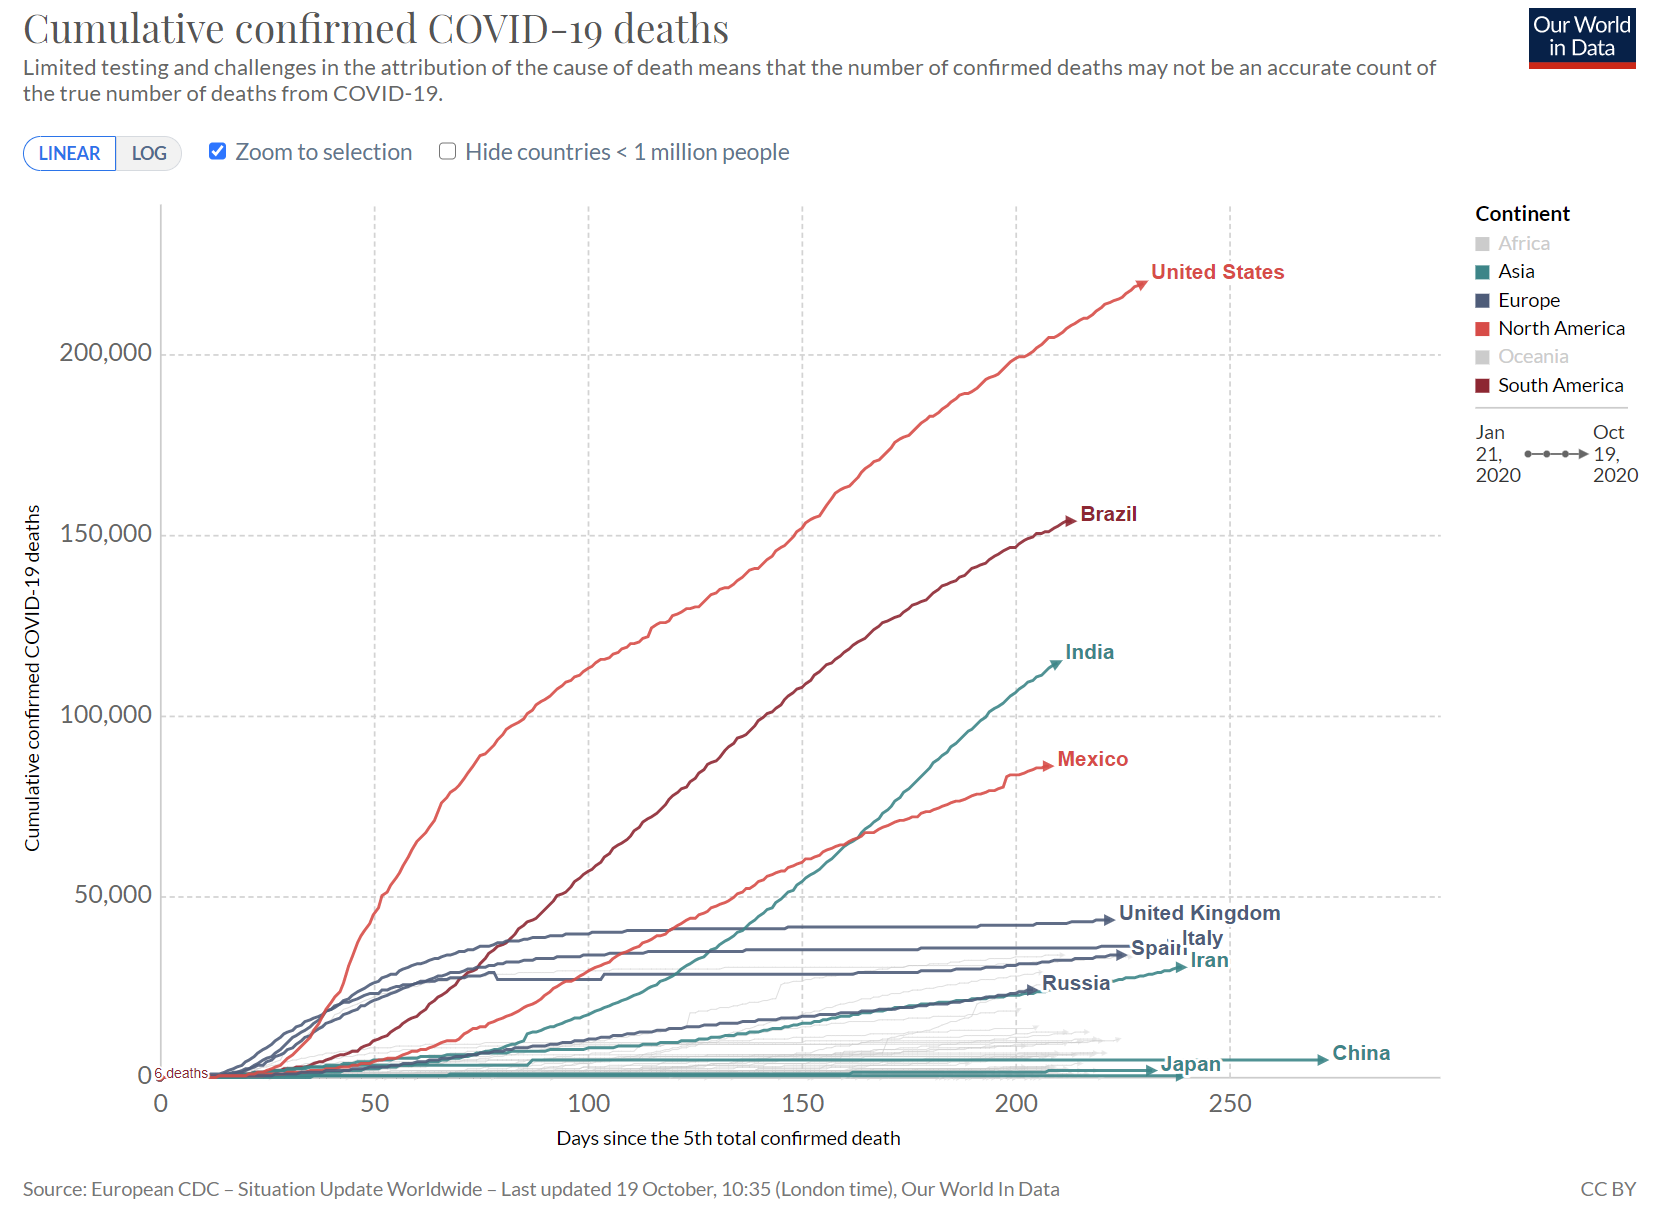 Total Confirmed Death COVID-19 in Selected Countries